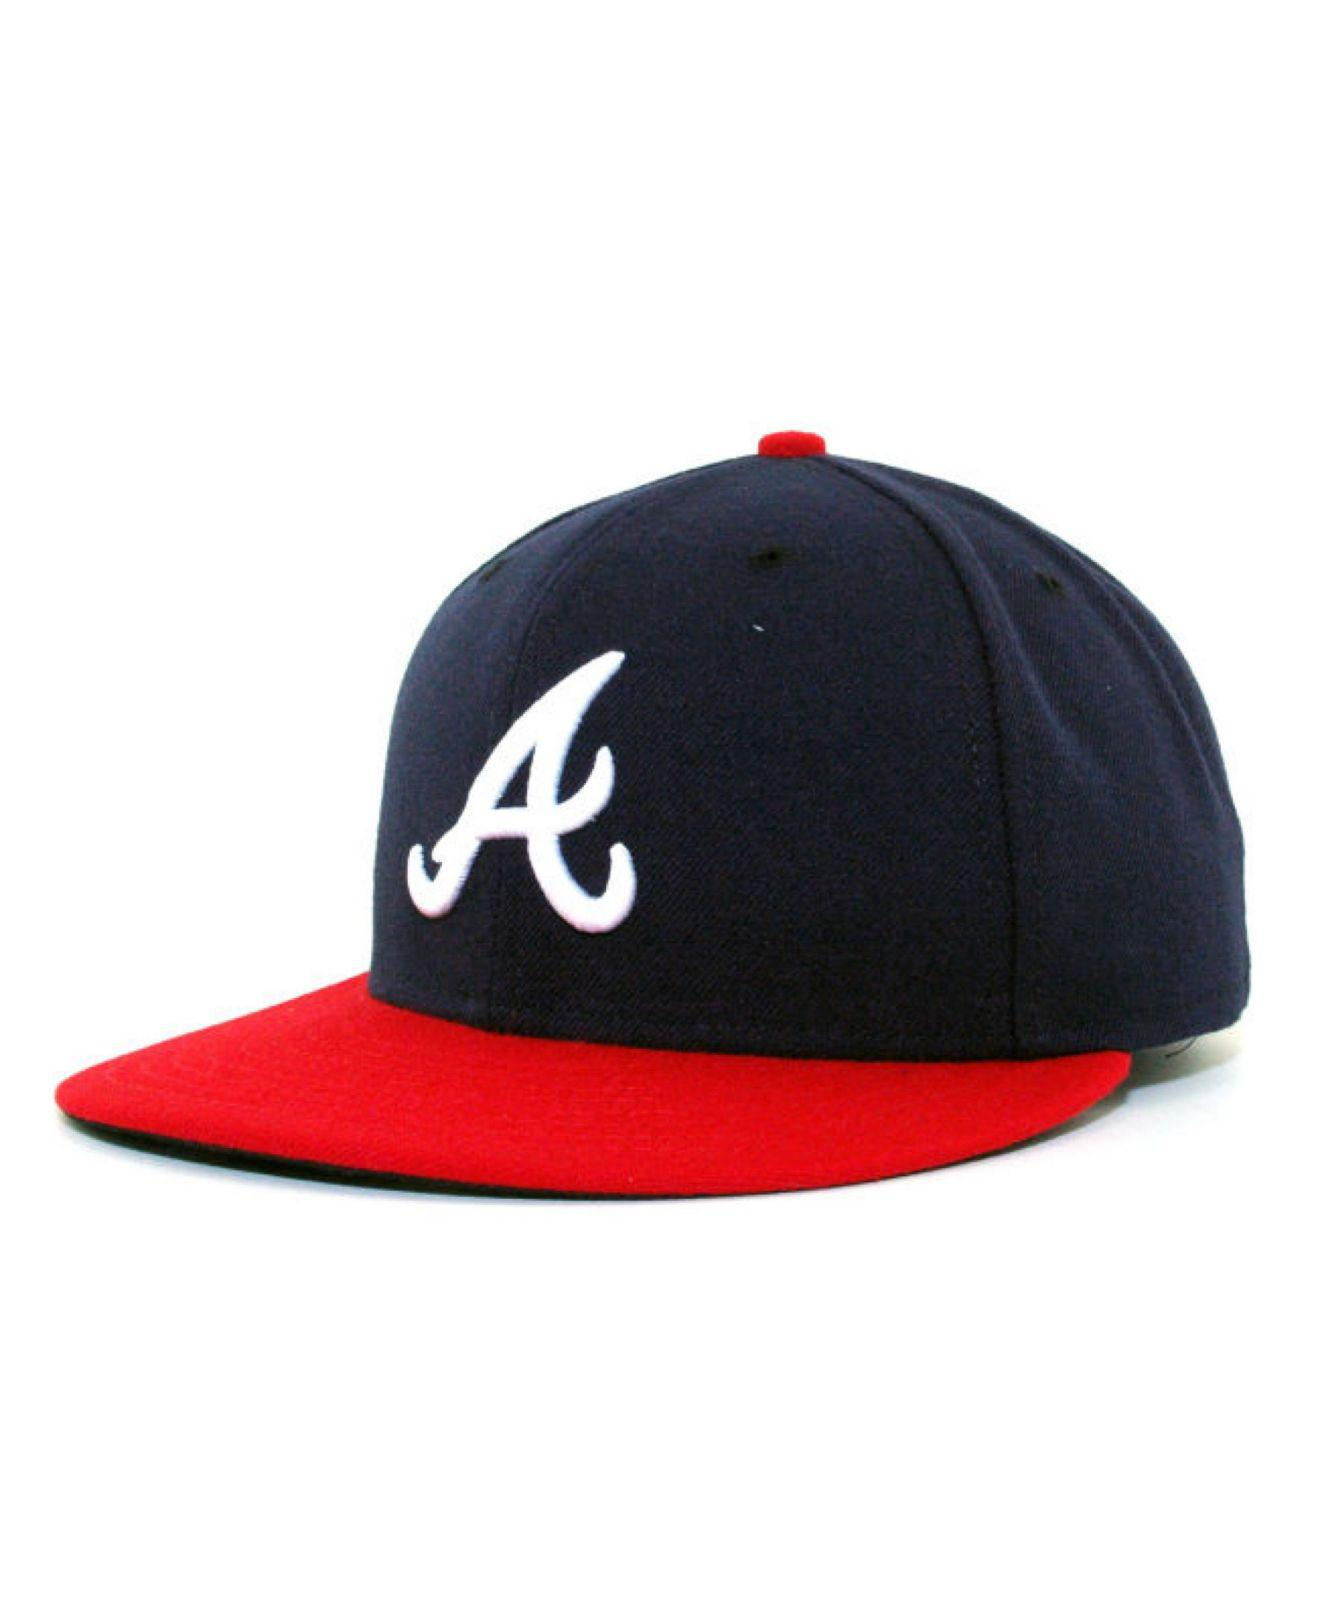 ea6e5a32ff1 Lyst - KTZ Atlanta Braves Mlb Authentic Collection 59fifty Cap in ...